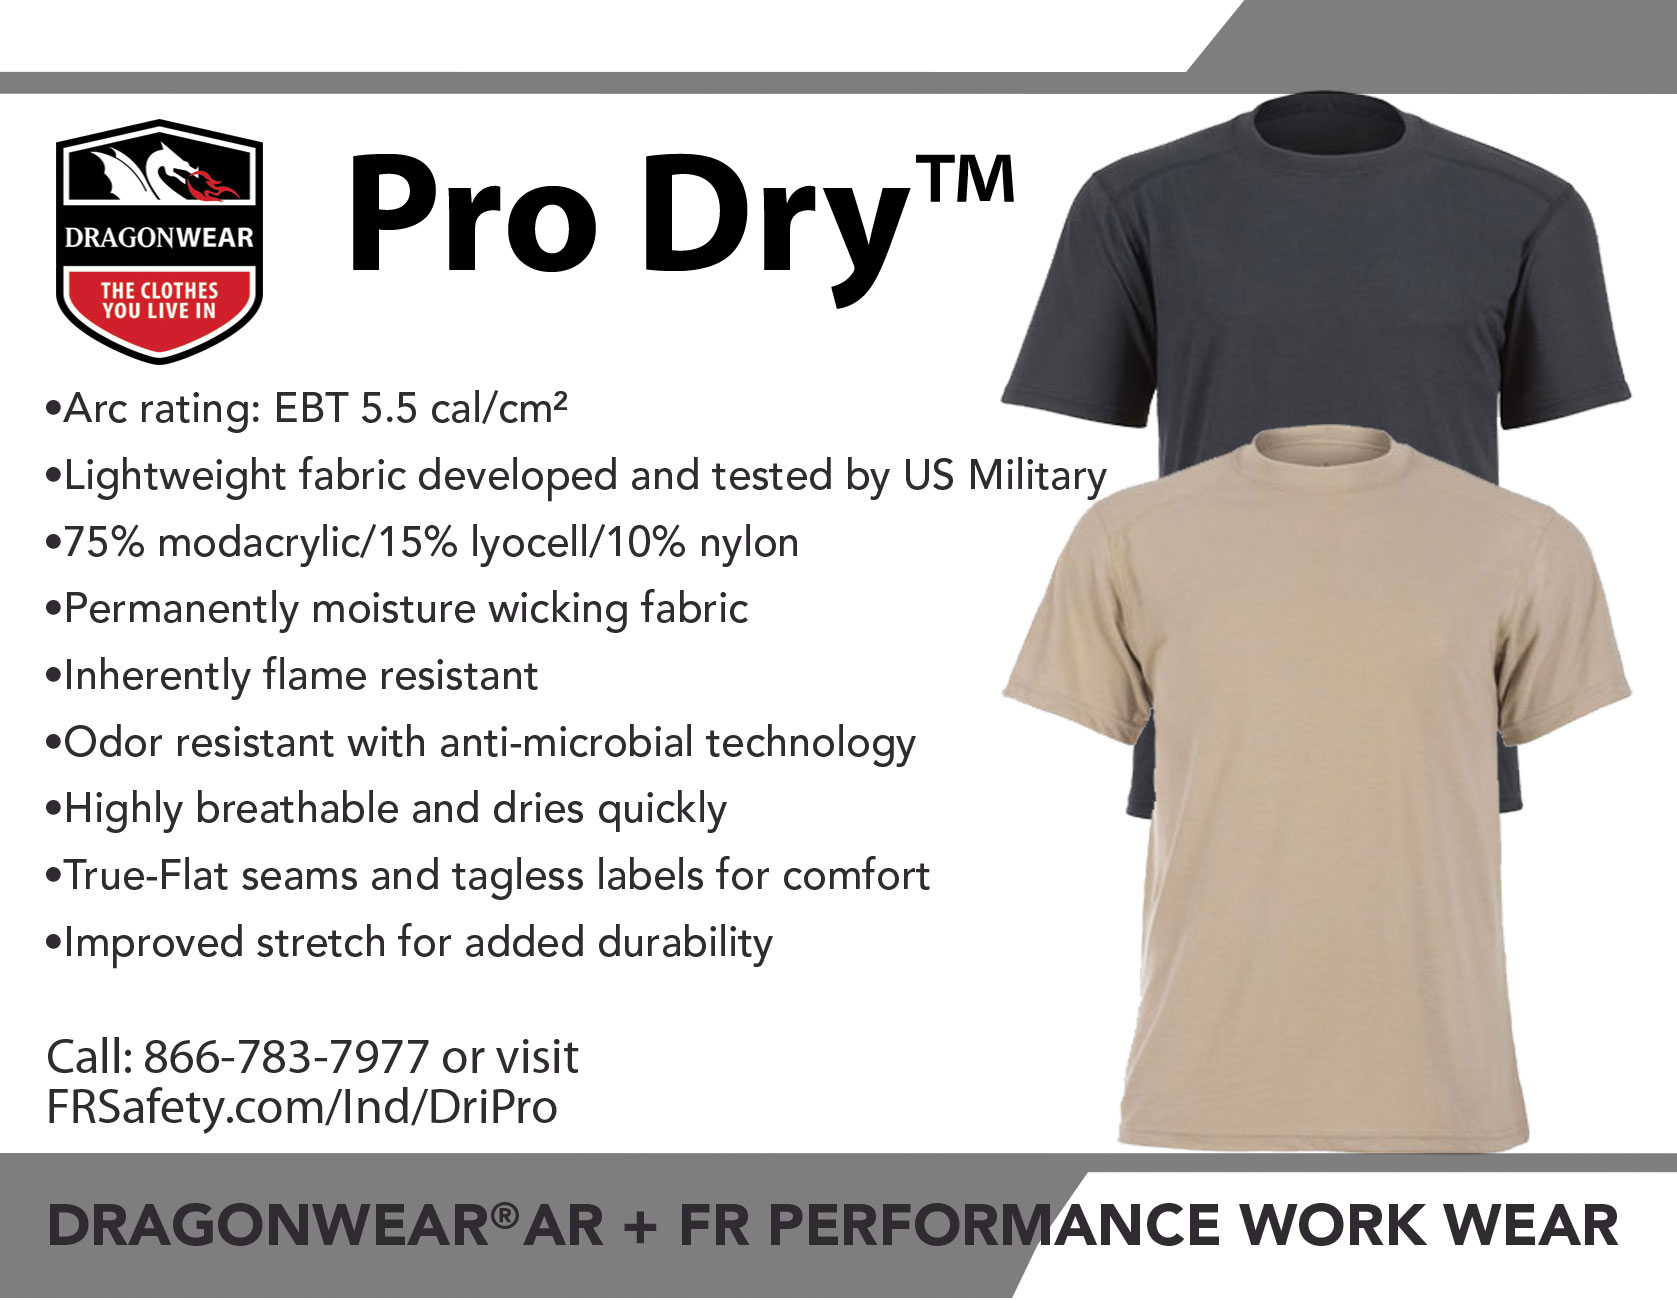 29482b3aa FRS: What is your favorite feature of the Pro Dry™ shirt? DS: The soft  hand. It is so much more comfortable against your skin than the previous  shirt.